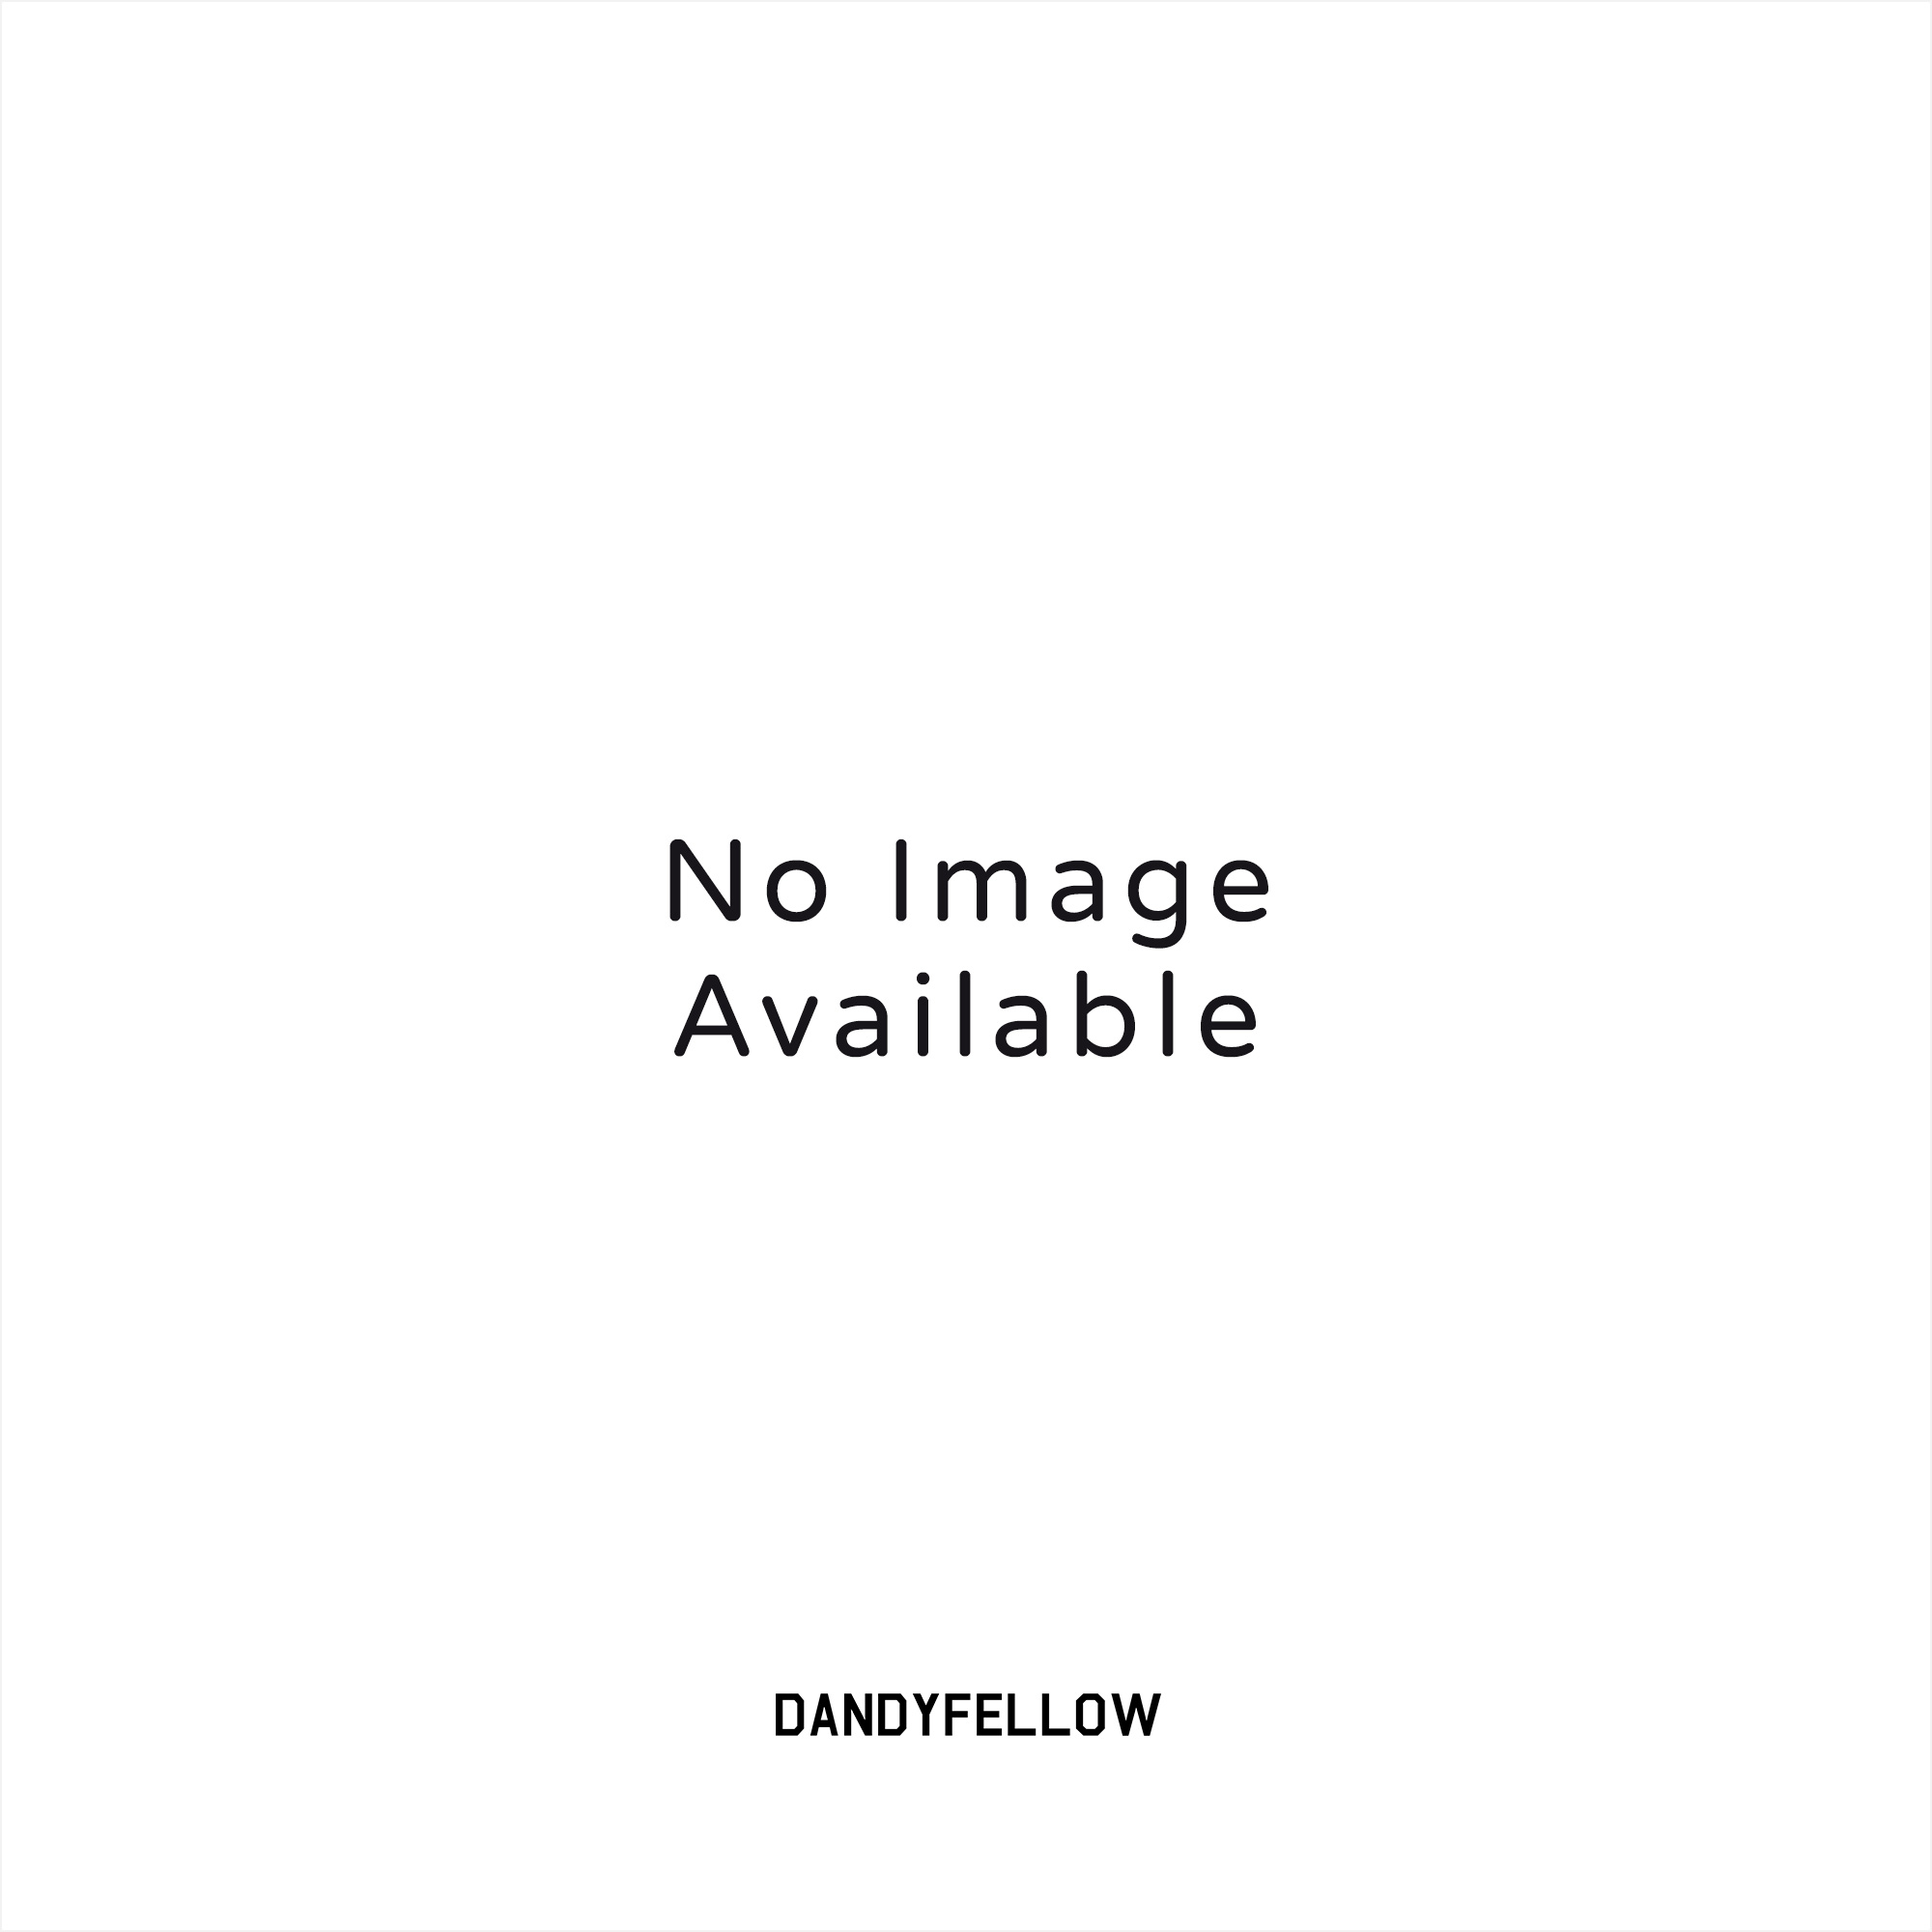 Nike Chronicle Deluxe 1971-1980s Book